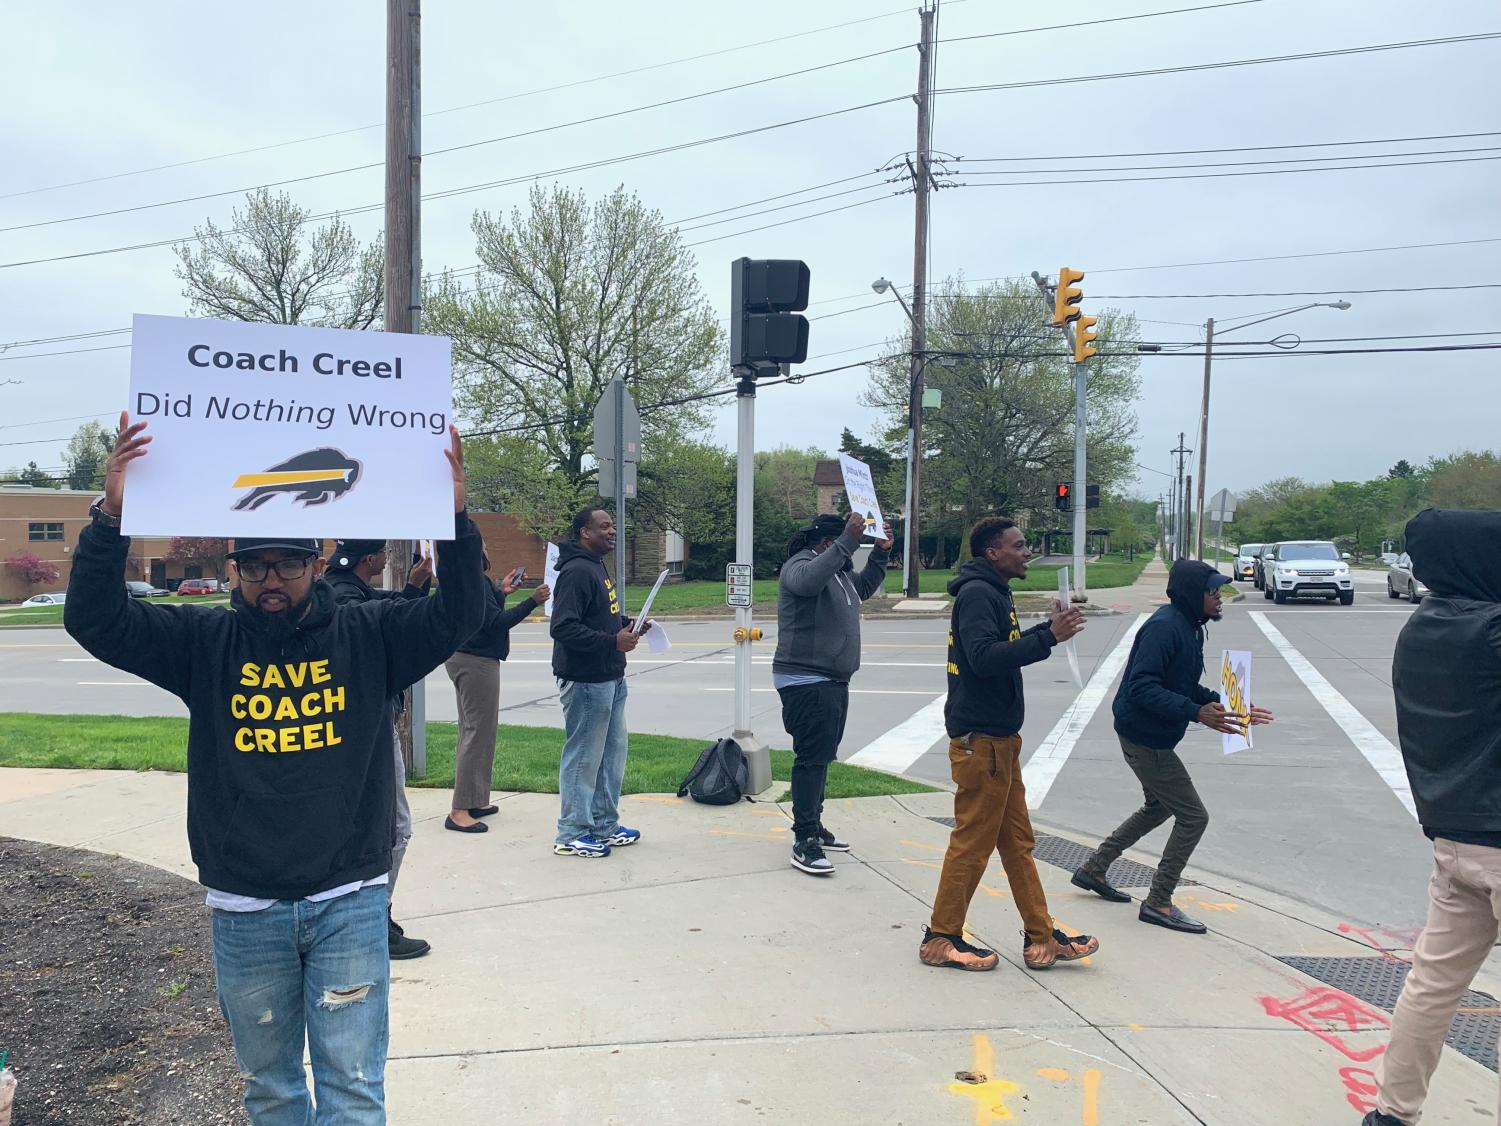 On Friday, May 10, protesters rallied at the corner of Fairmount and Richmond wearing sweatshirts reading 'Save Coach Creel' and handing out flyers demanding he be reinstated.